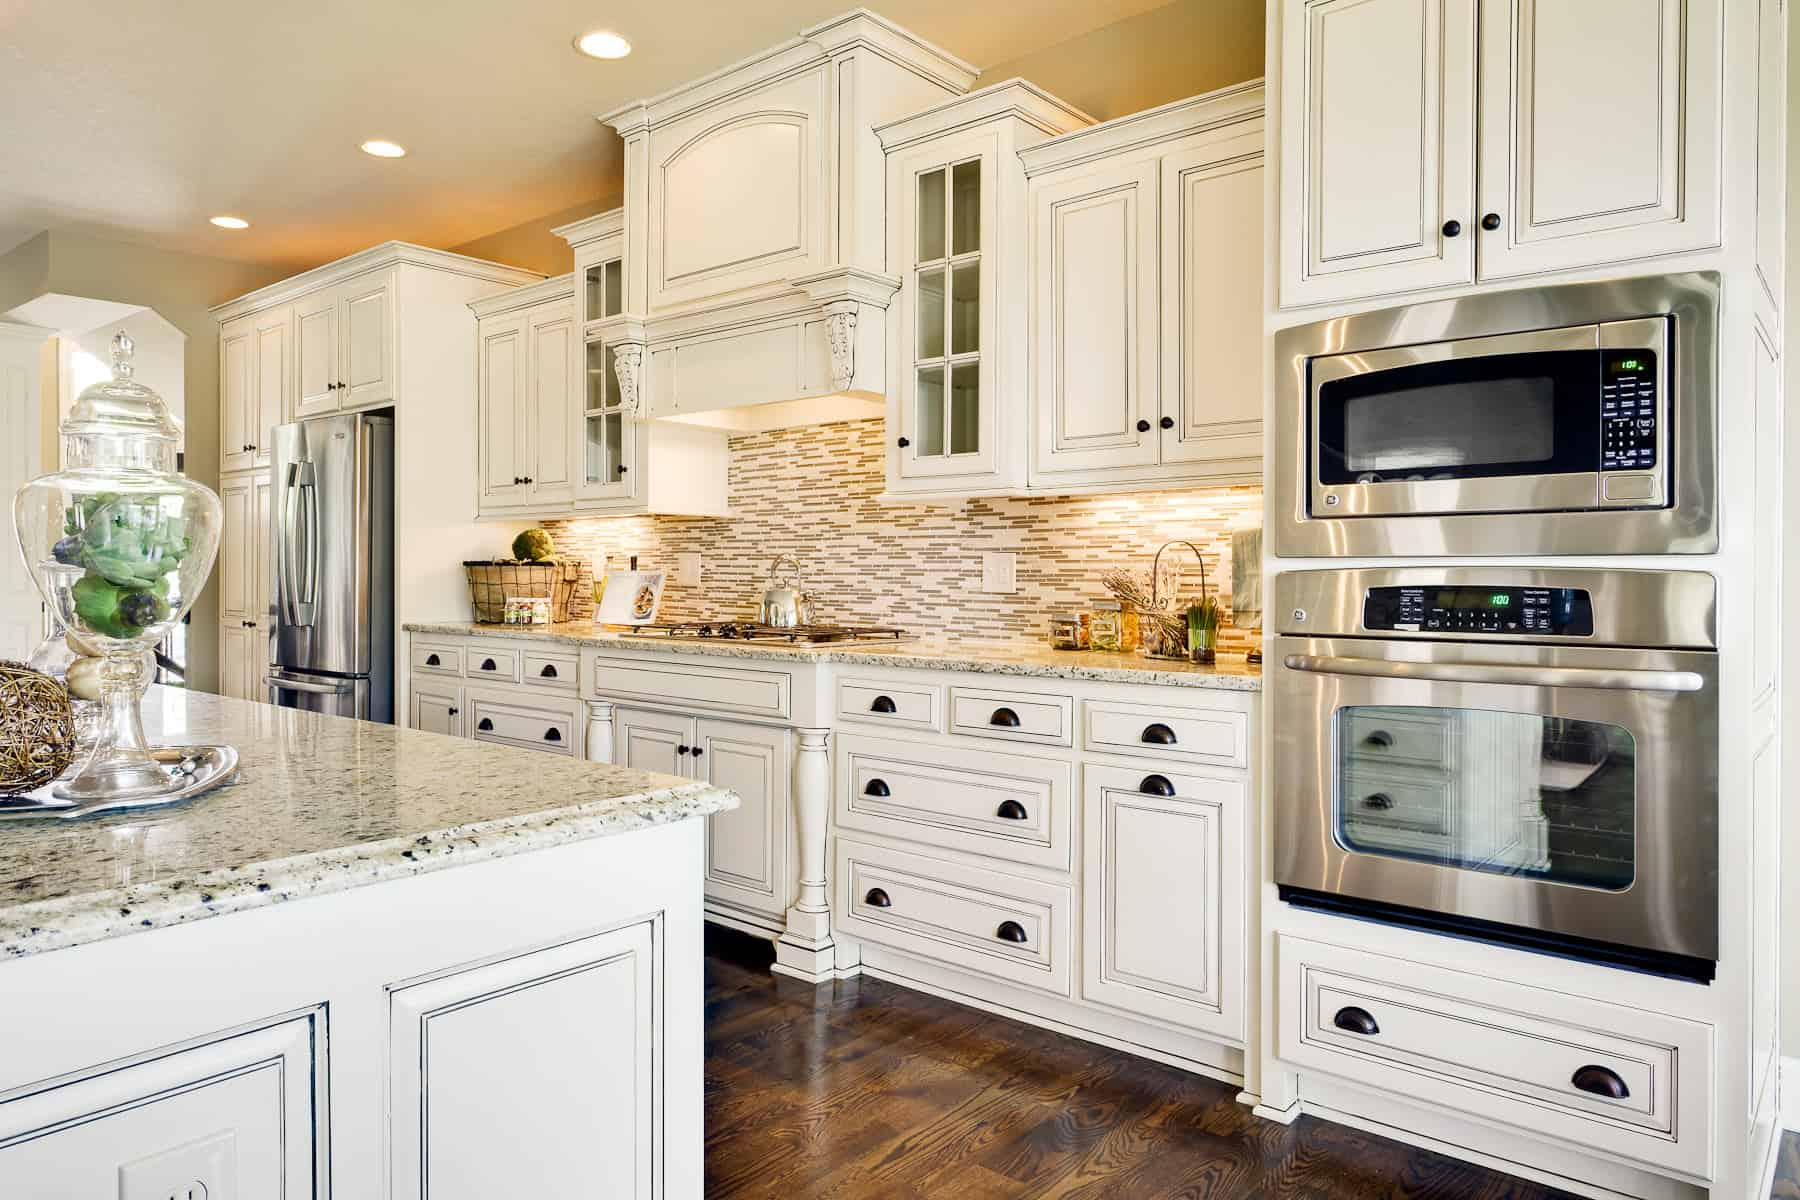 Granite Kitchens 5 Reasons To Choose Granite For Your Countertops Countertop Guides